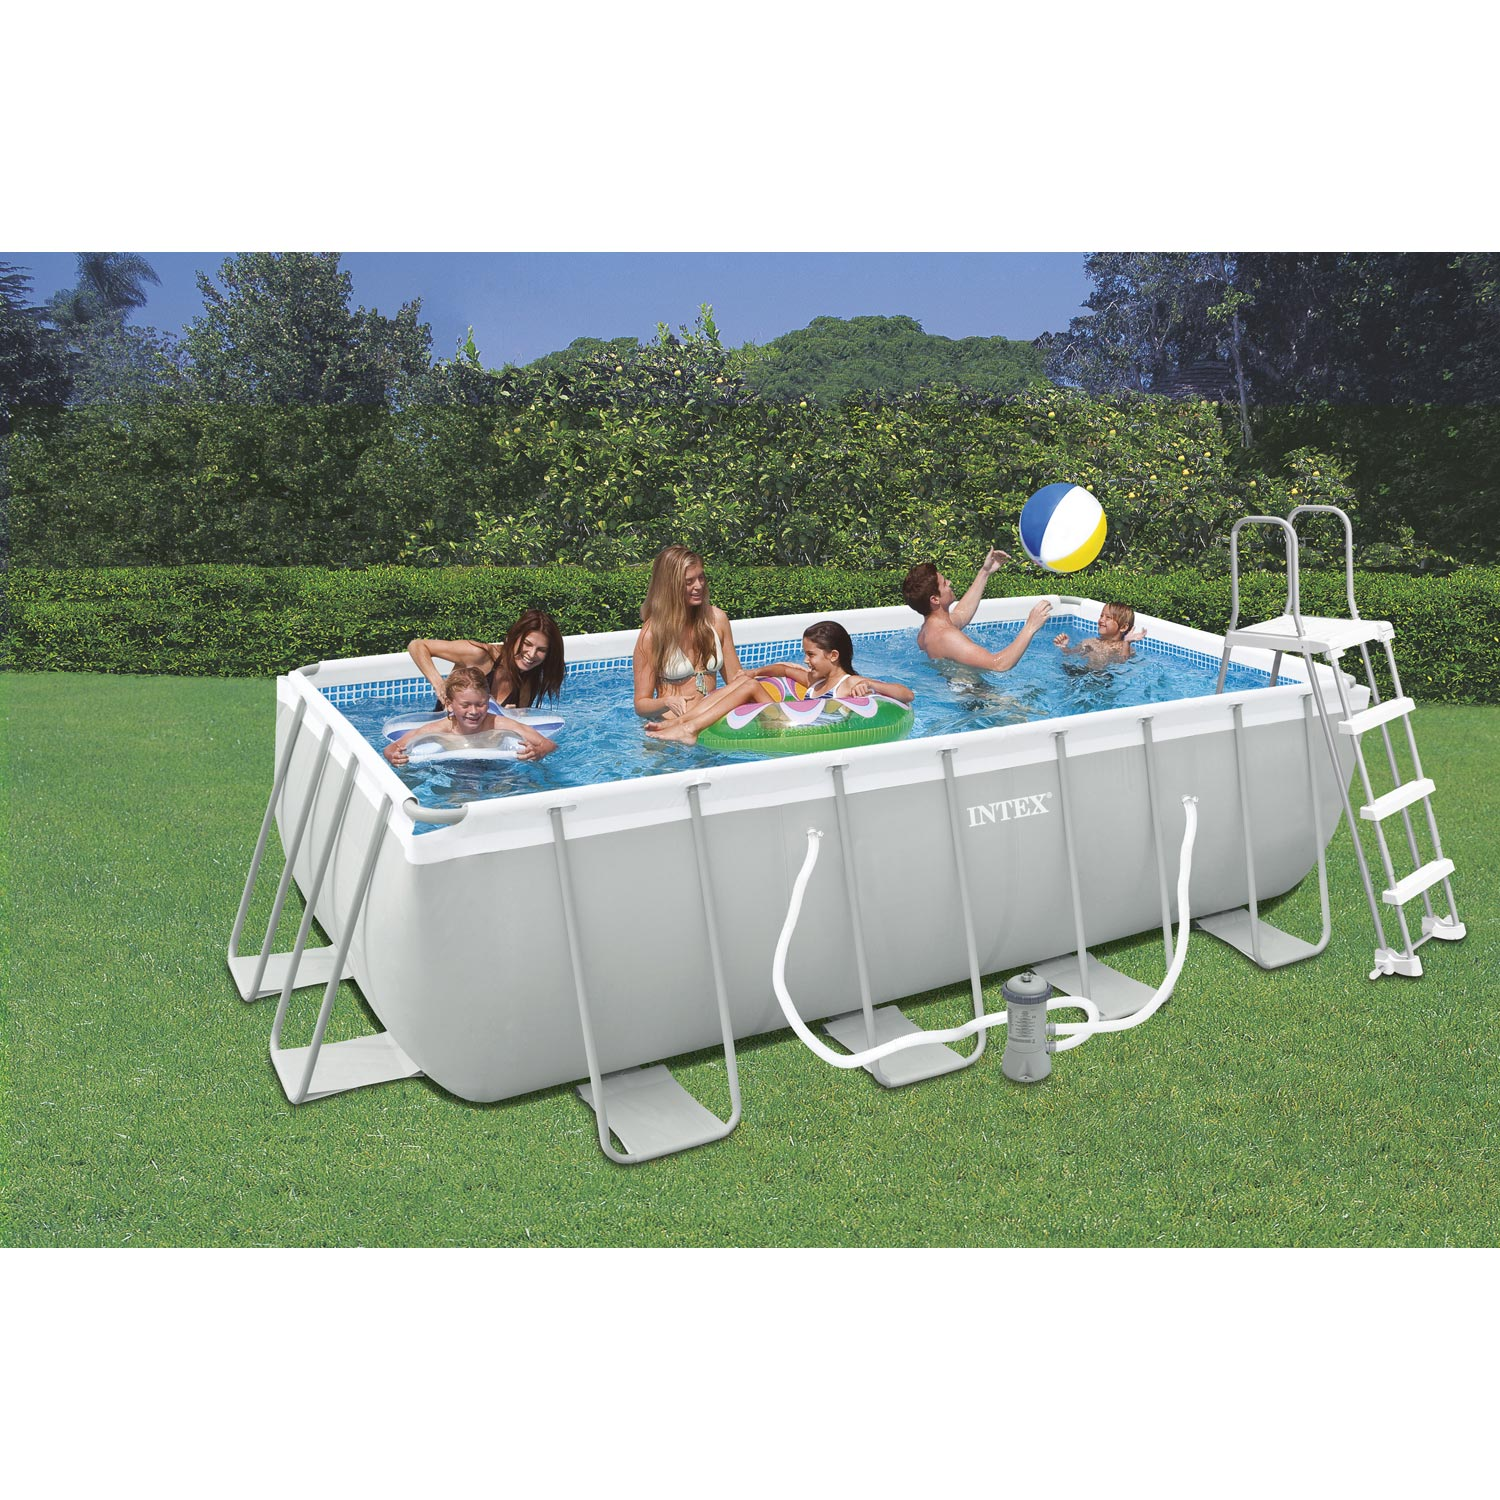 Piscine hors sol tubulaire s rie sp ciale intex for Piscine aure sol